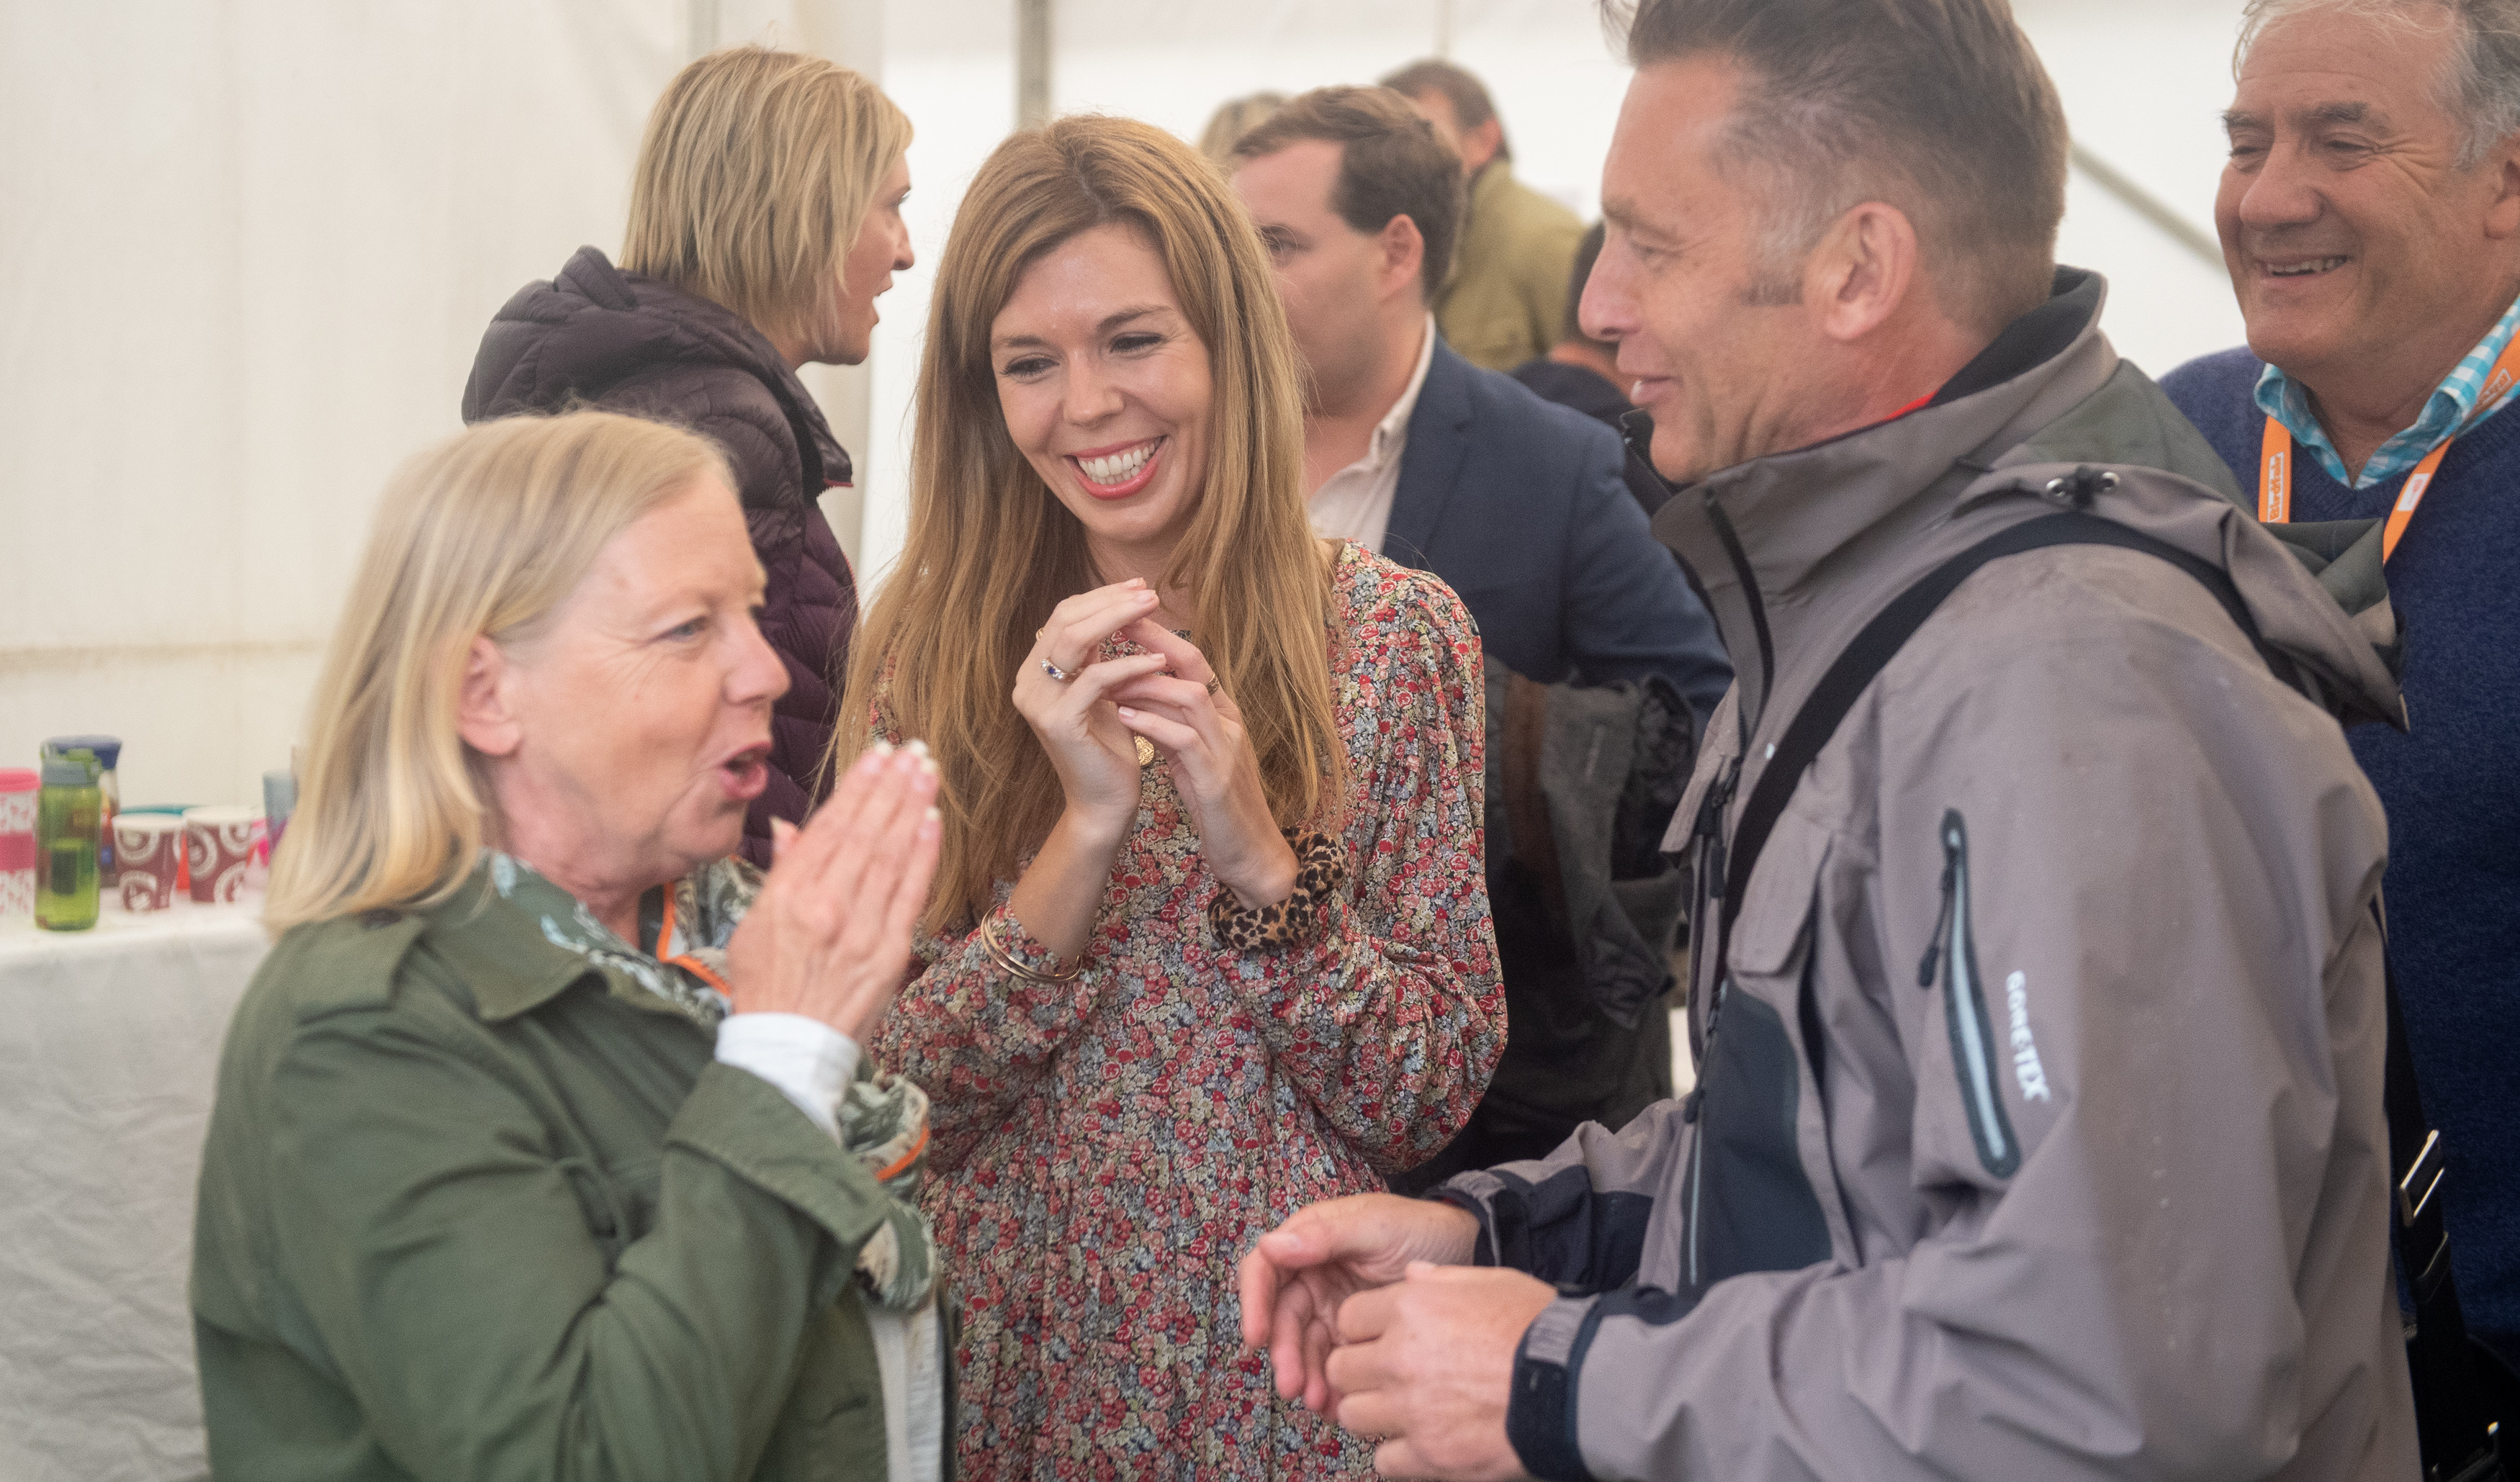 Carrie Symonds, the partner of Prime Minister Boris Johnson, attends Birdfair, an environmental awareness conference, at the Rutland Water Nature Reserve in Egleton near Oakham, where she is due to give a speech.